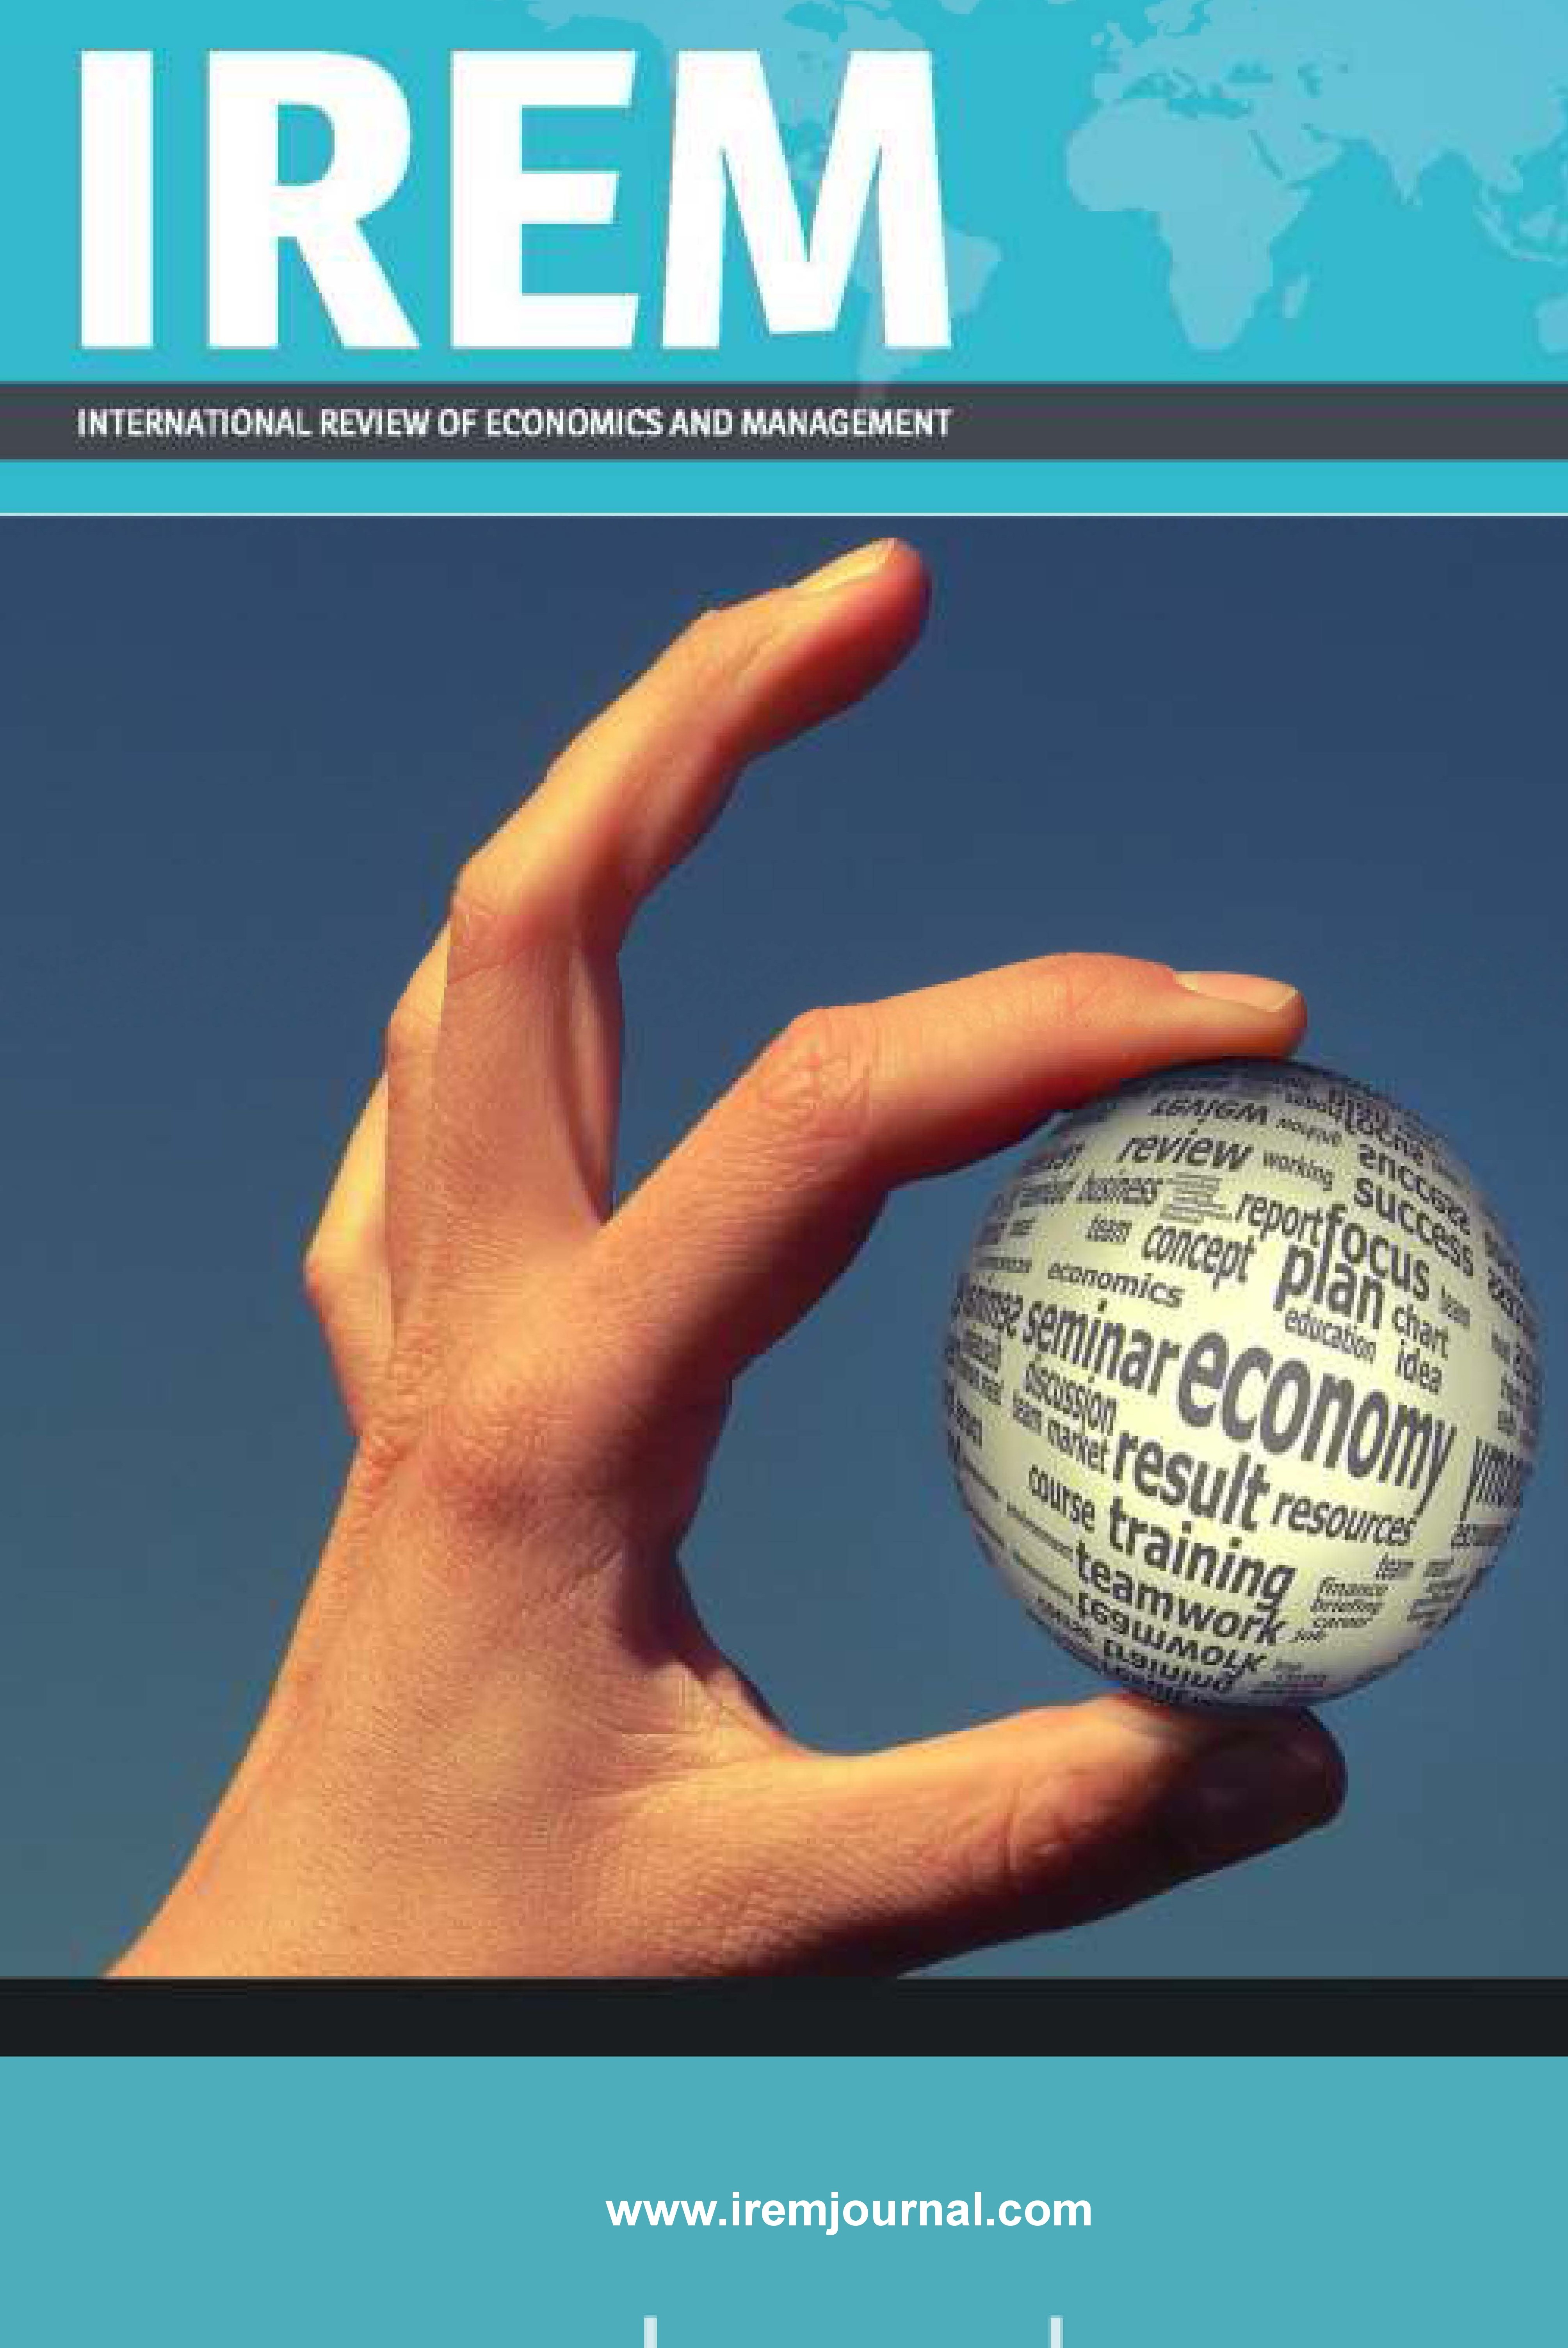 International Review of Economics and Management